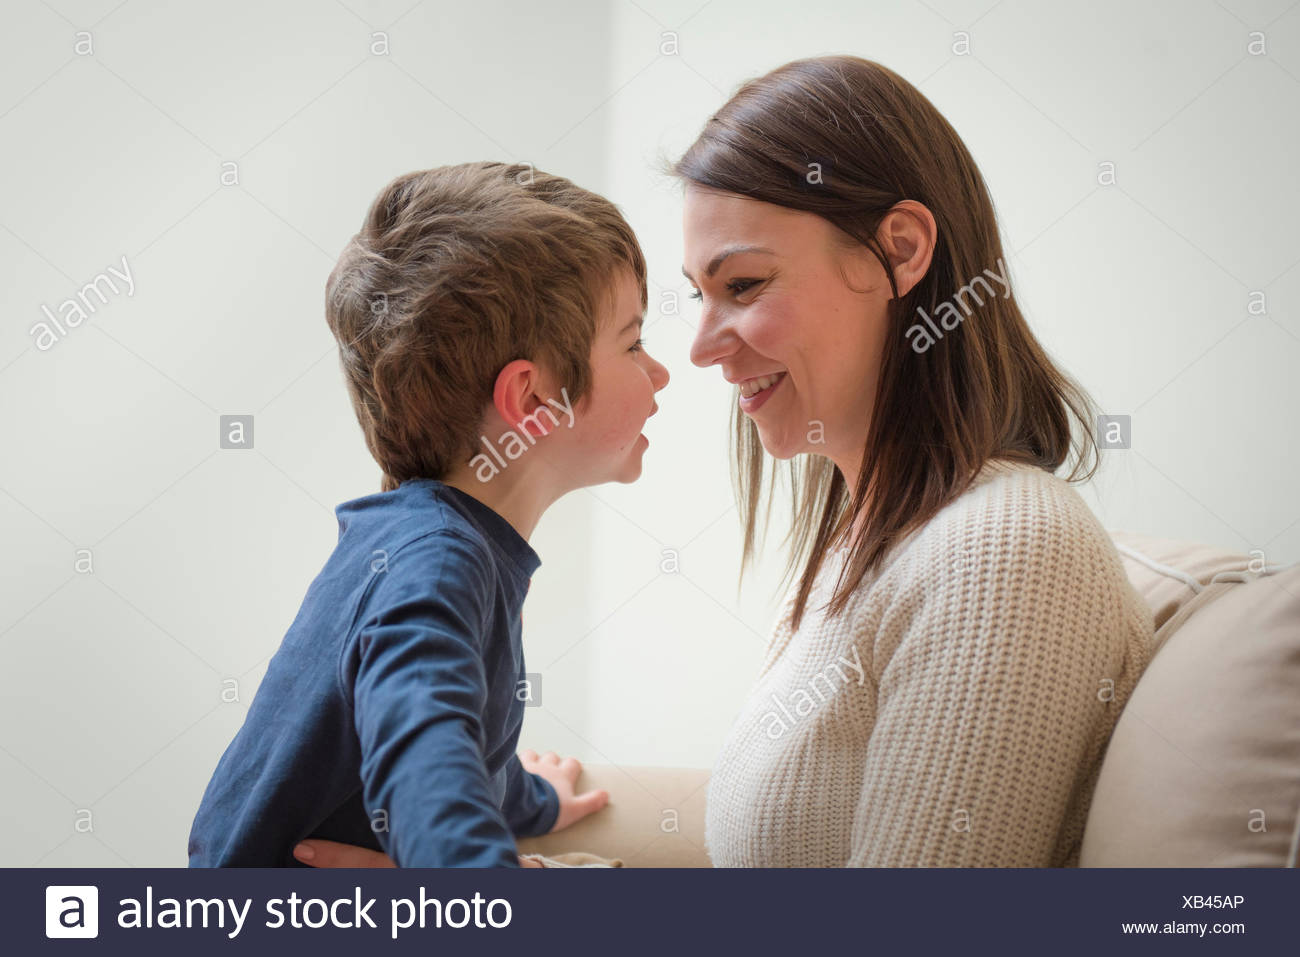 Mother and son smiling at each other, face to face - Stock Image